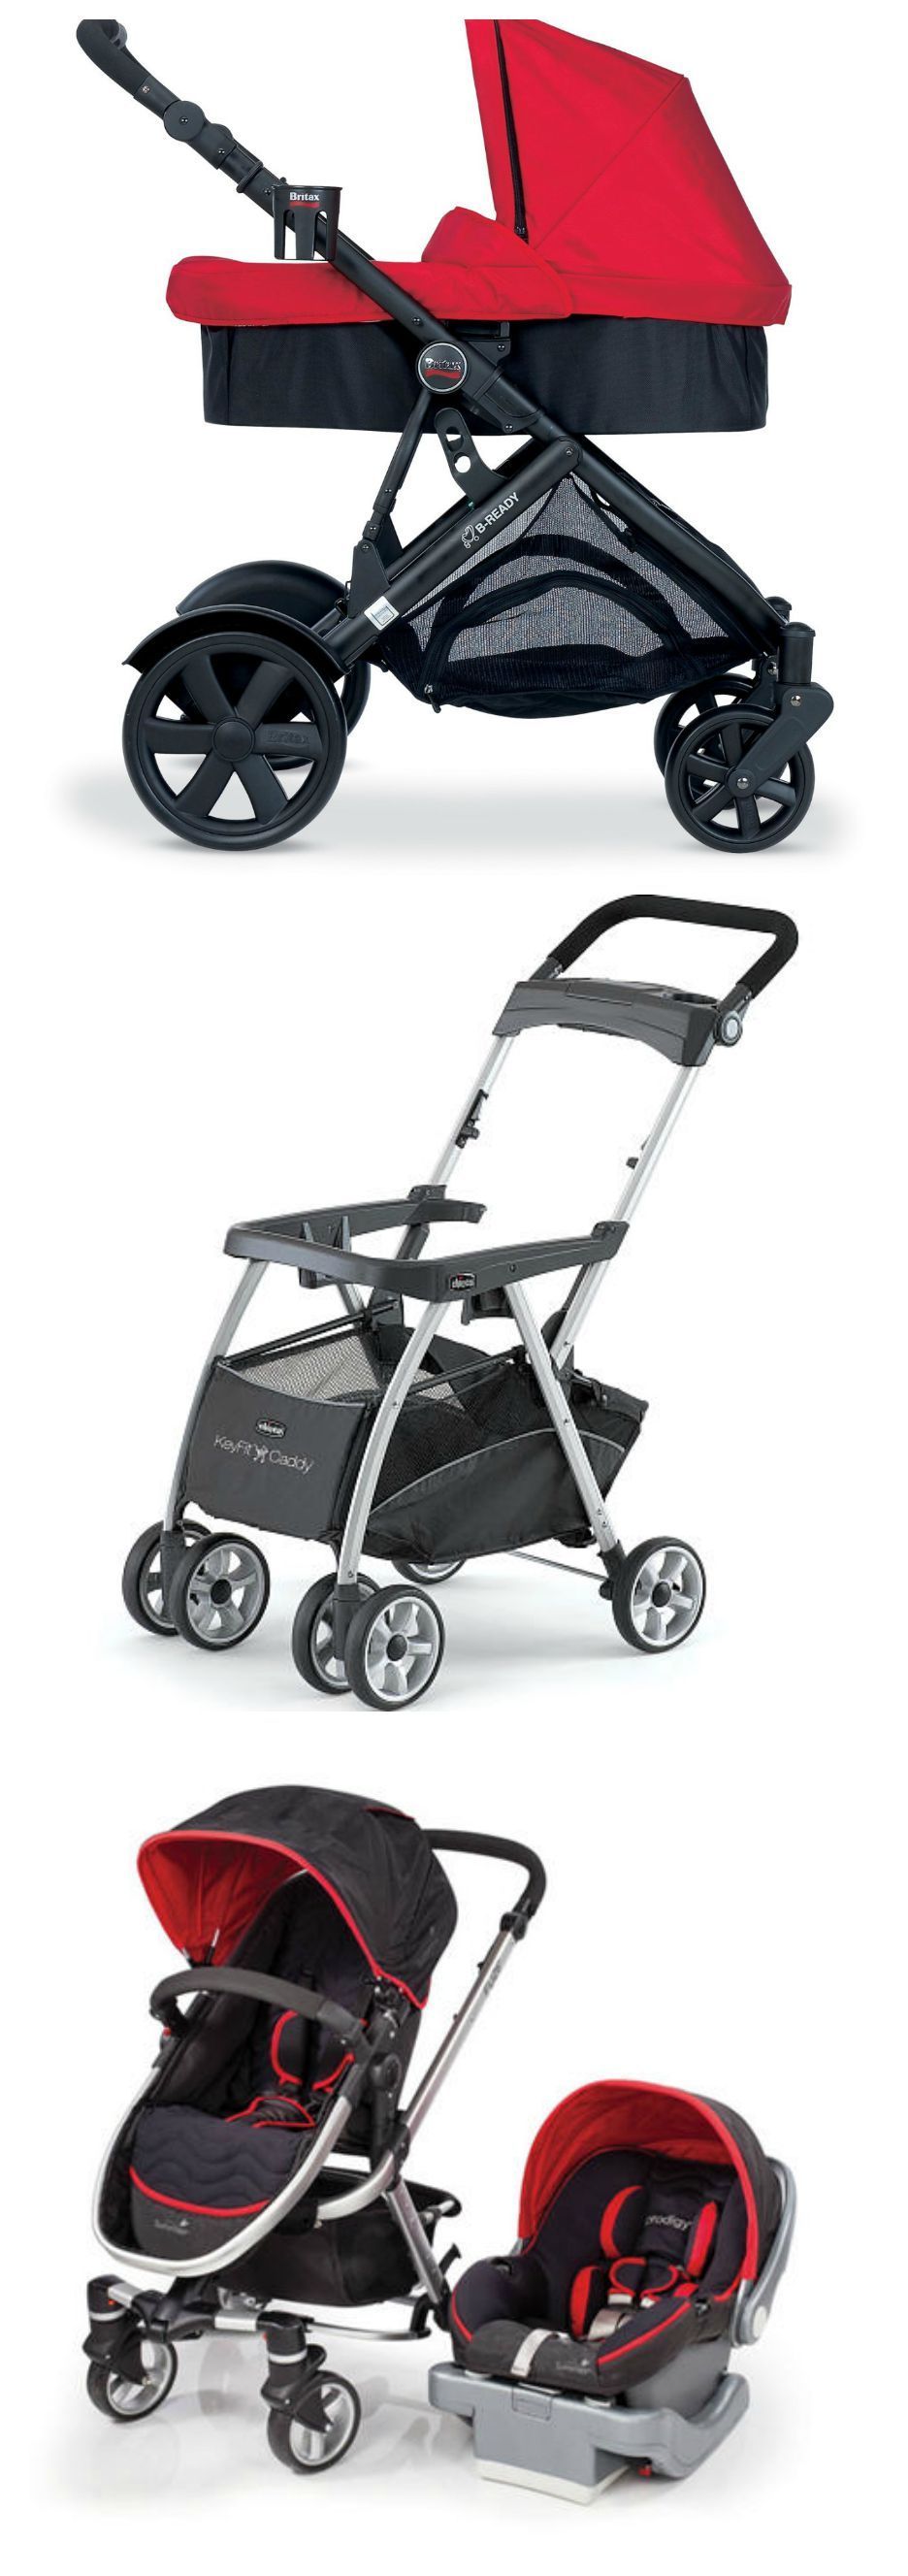 Carriage Type Strollers What Type Of Stroller Should I Get Strollers And Infant